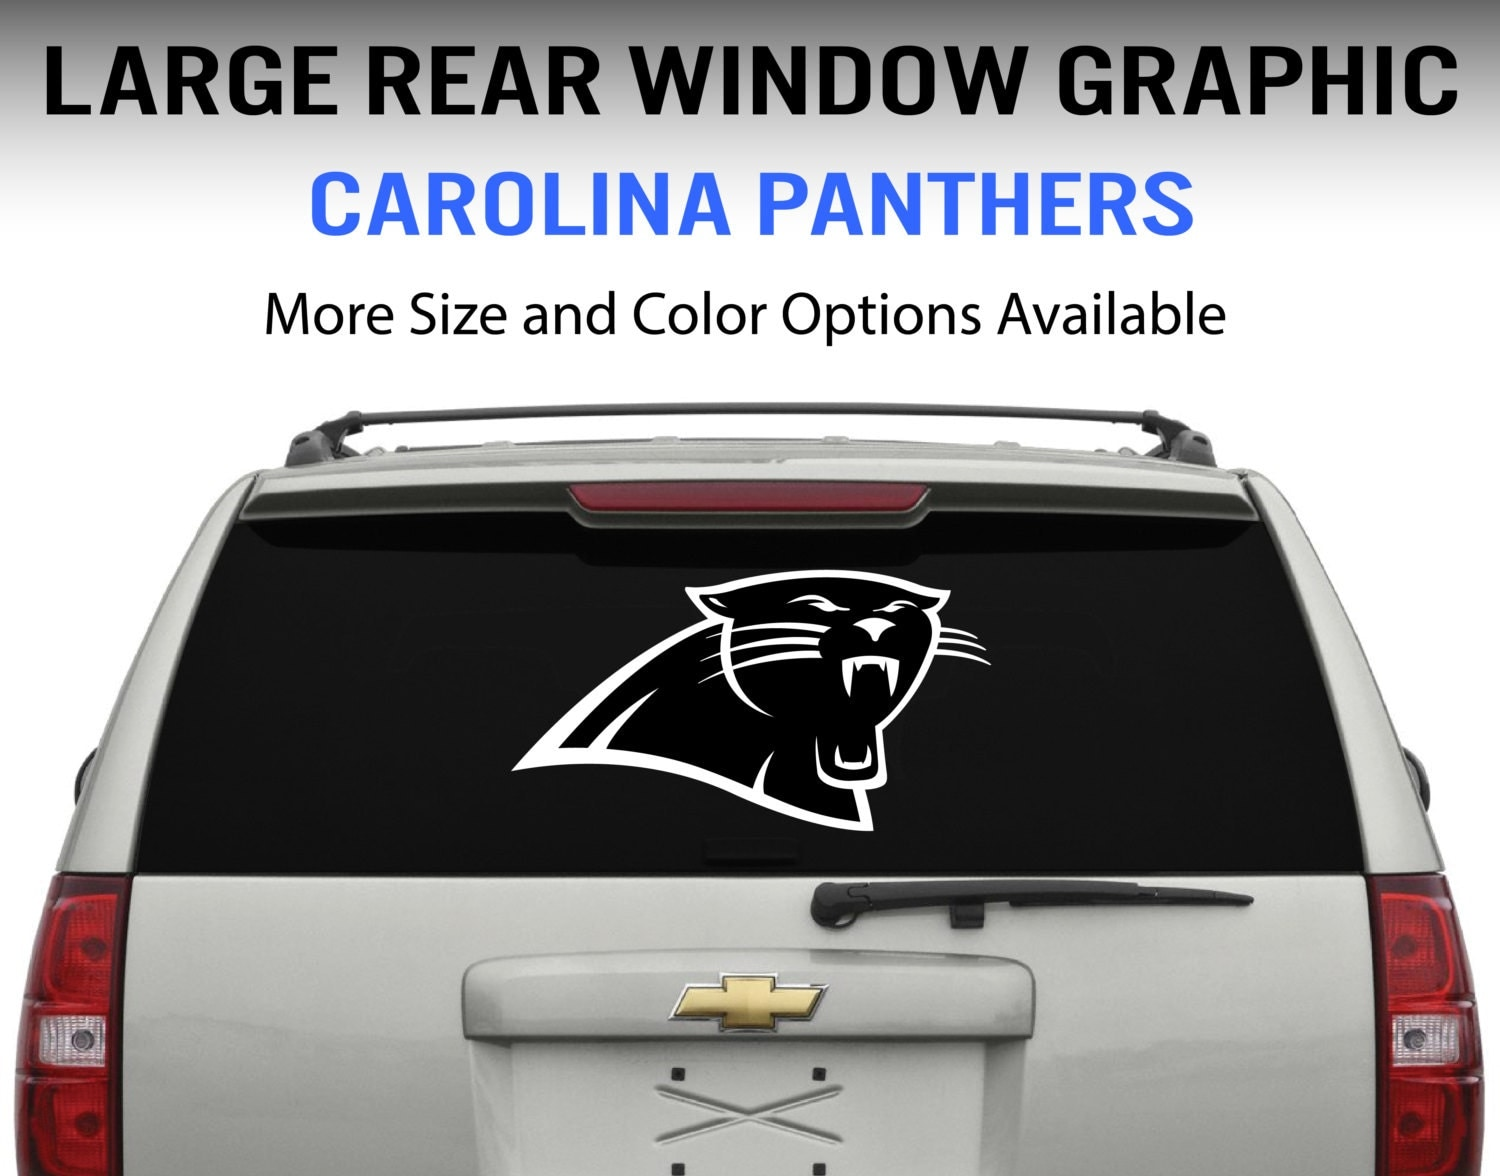 Carolina Panthers Window Decal Graphic Sticker For Truck Car - Rear window decals for vehicles